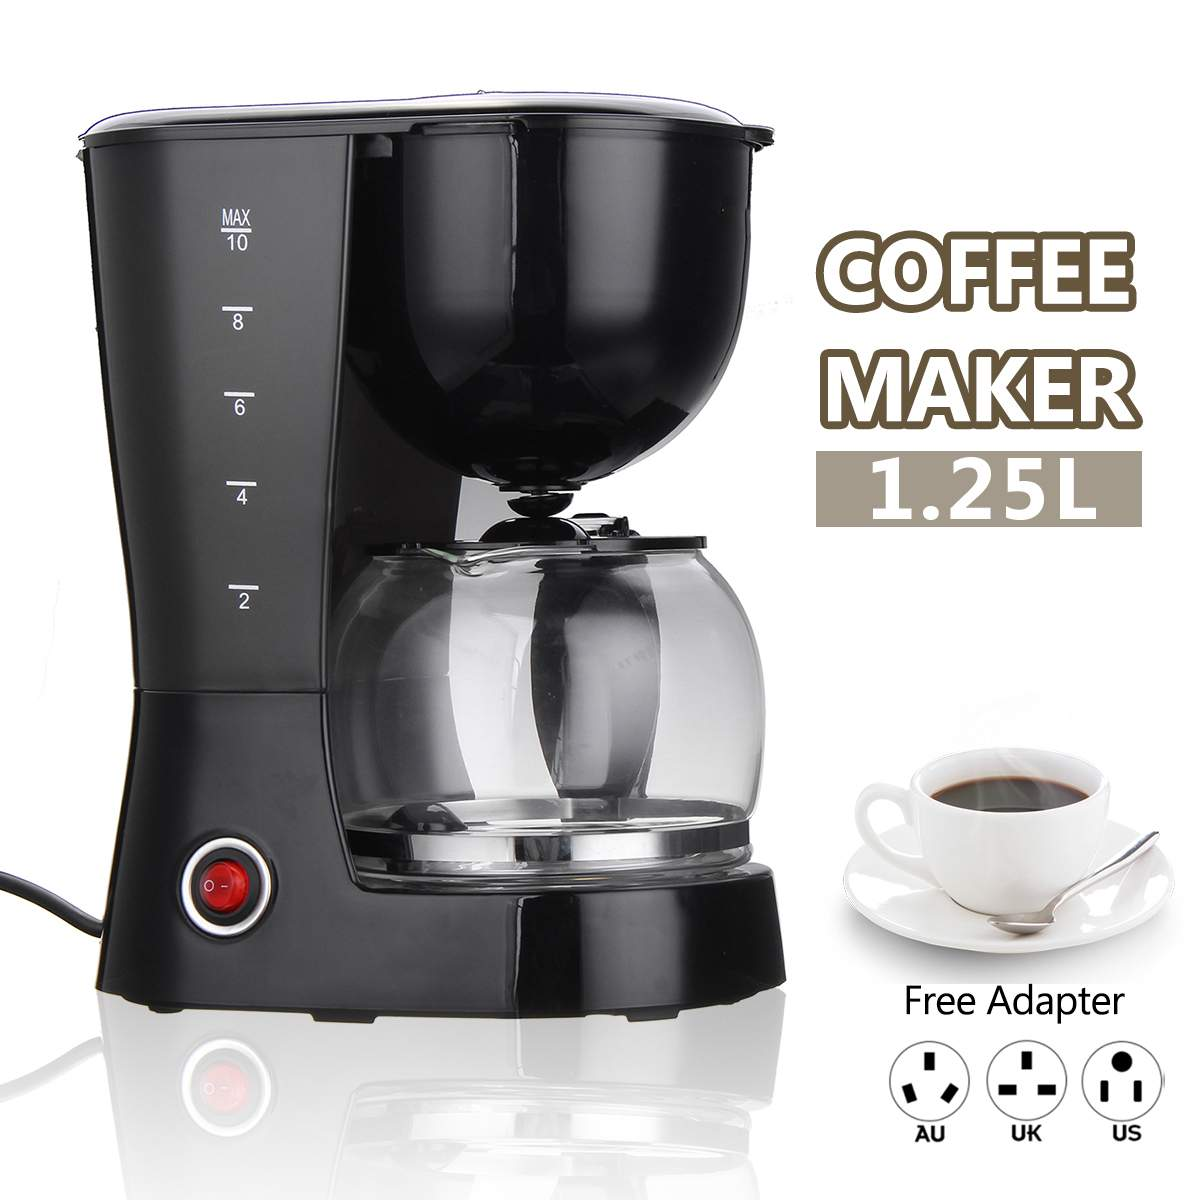 800W Portable 1.25L Electric Drip Coffee Maker Household Tea Espresso Latte Coffee Pot Home Office Cafe Coffee Making Machine800W Portable 1.25L Electric Drip Coffee Maker Household Tea Espresso Latte Coffee Pot Home Office Cafe Coffee Making Machine